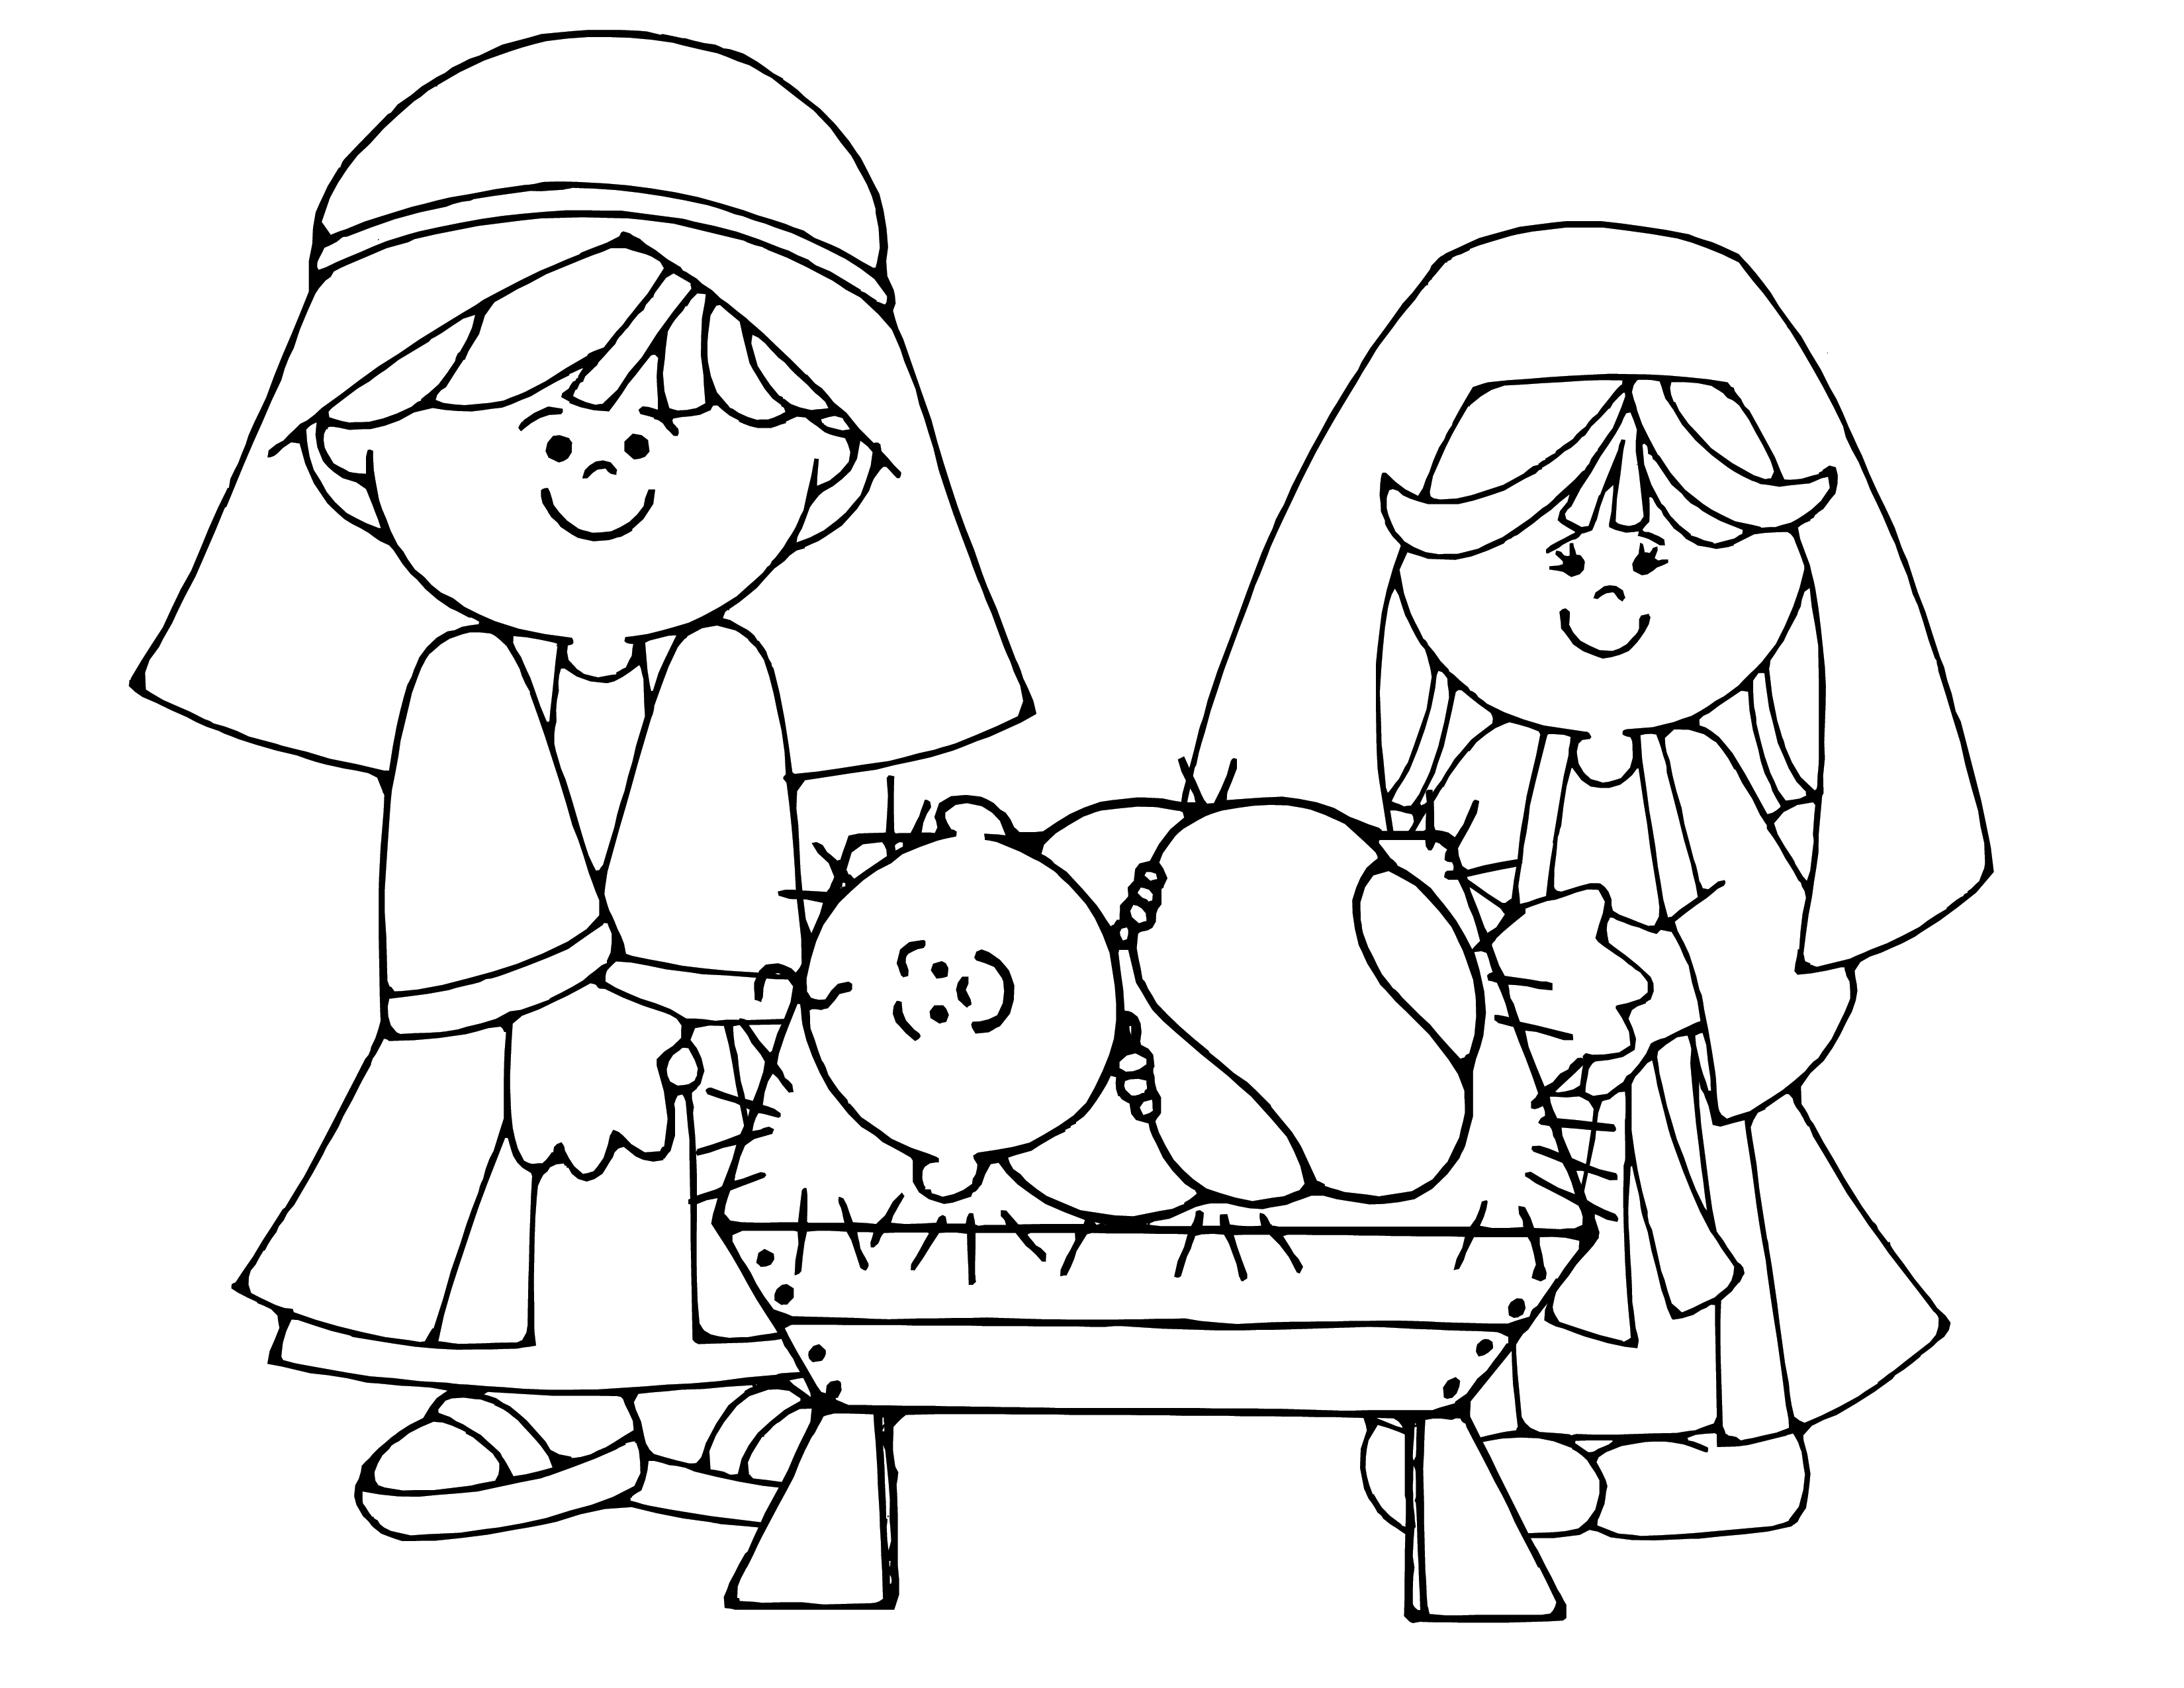 23 Playground Coloring Pages Selection